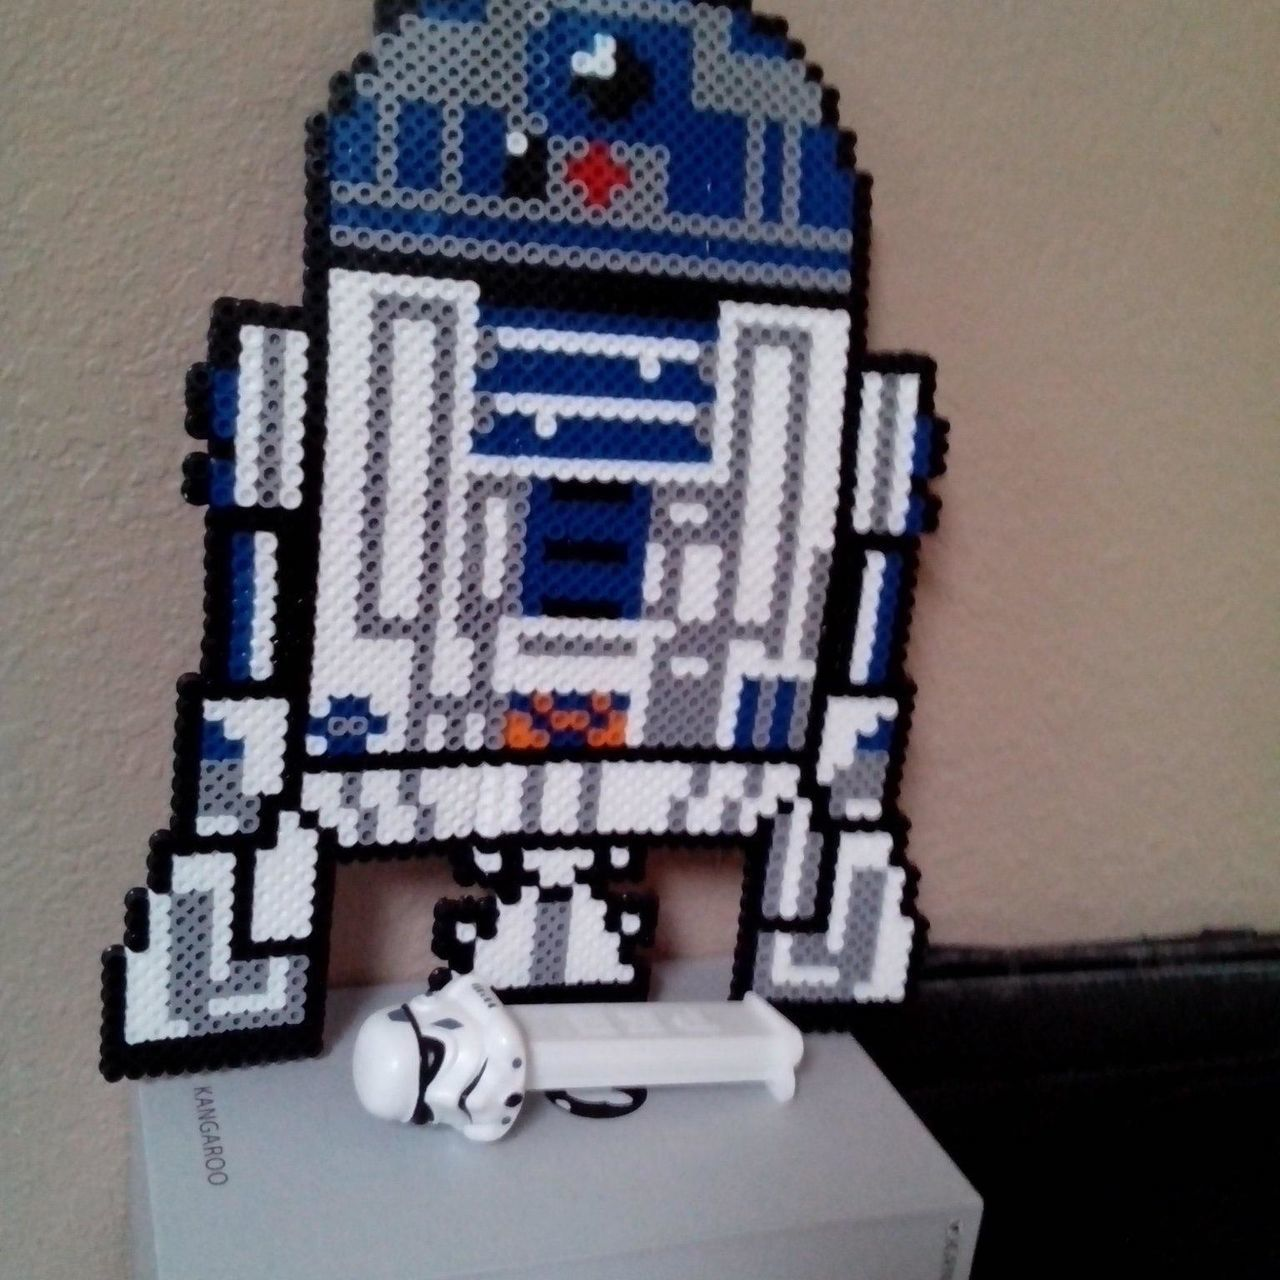 Indoors  No People Close-up Skill  Day R2D2 Starwars Starwarstoys Beads Arts Crafts